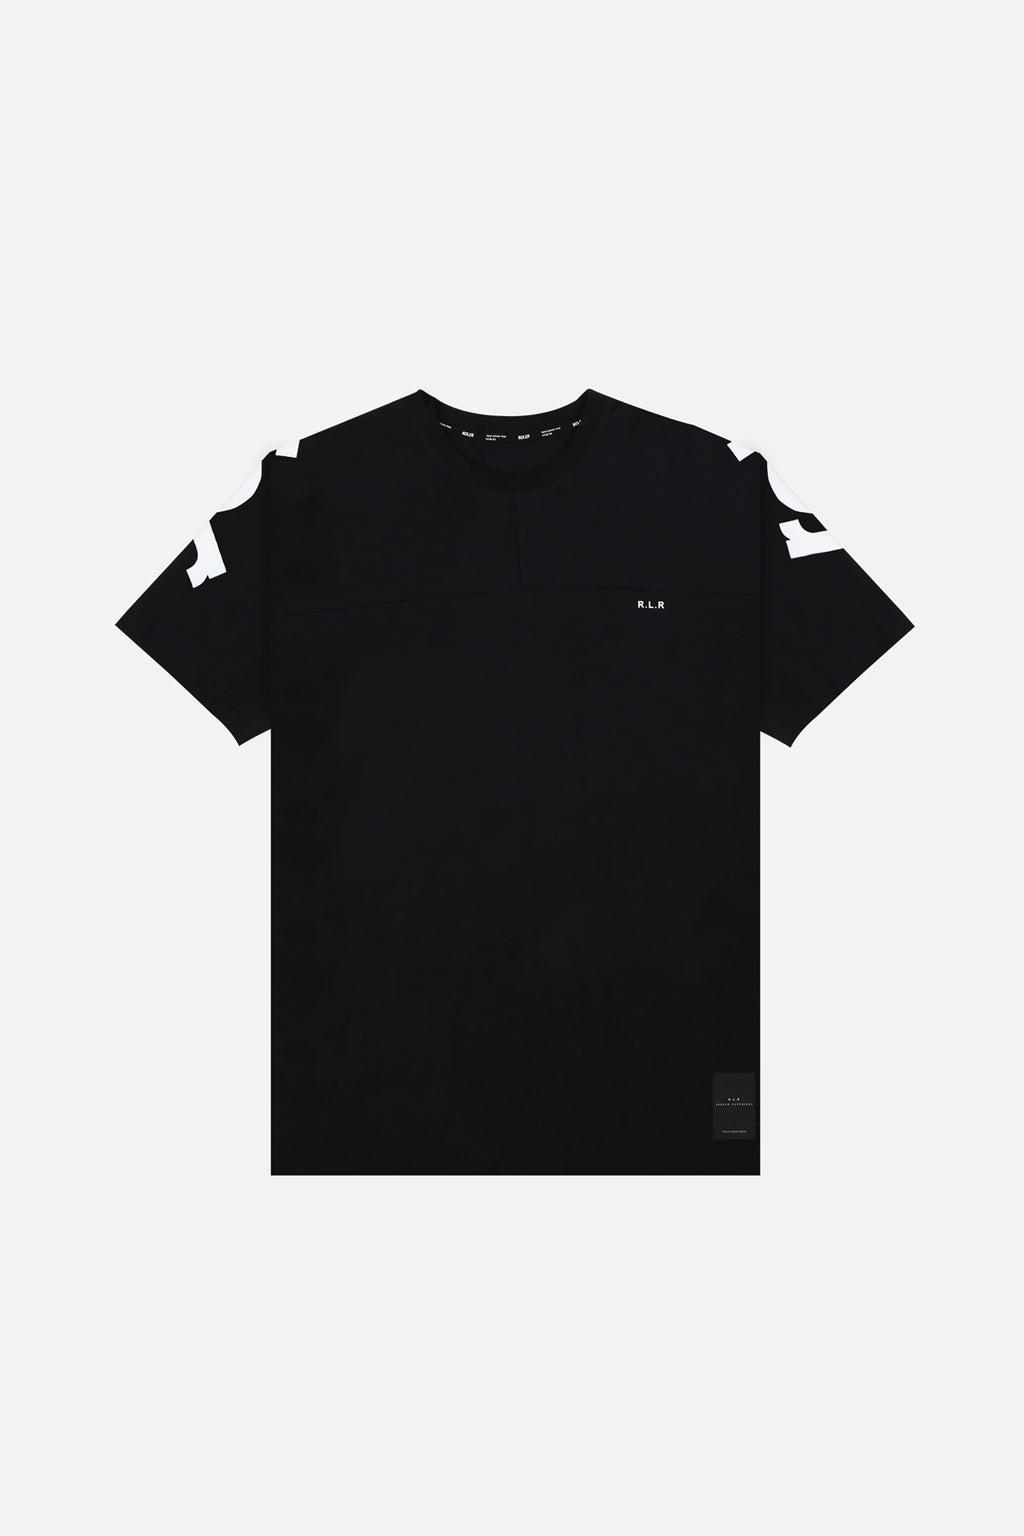 The Mendoza Tee - Black - Roler Clothing